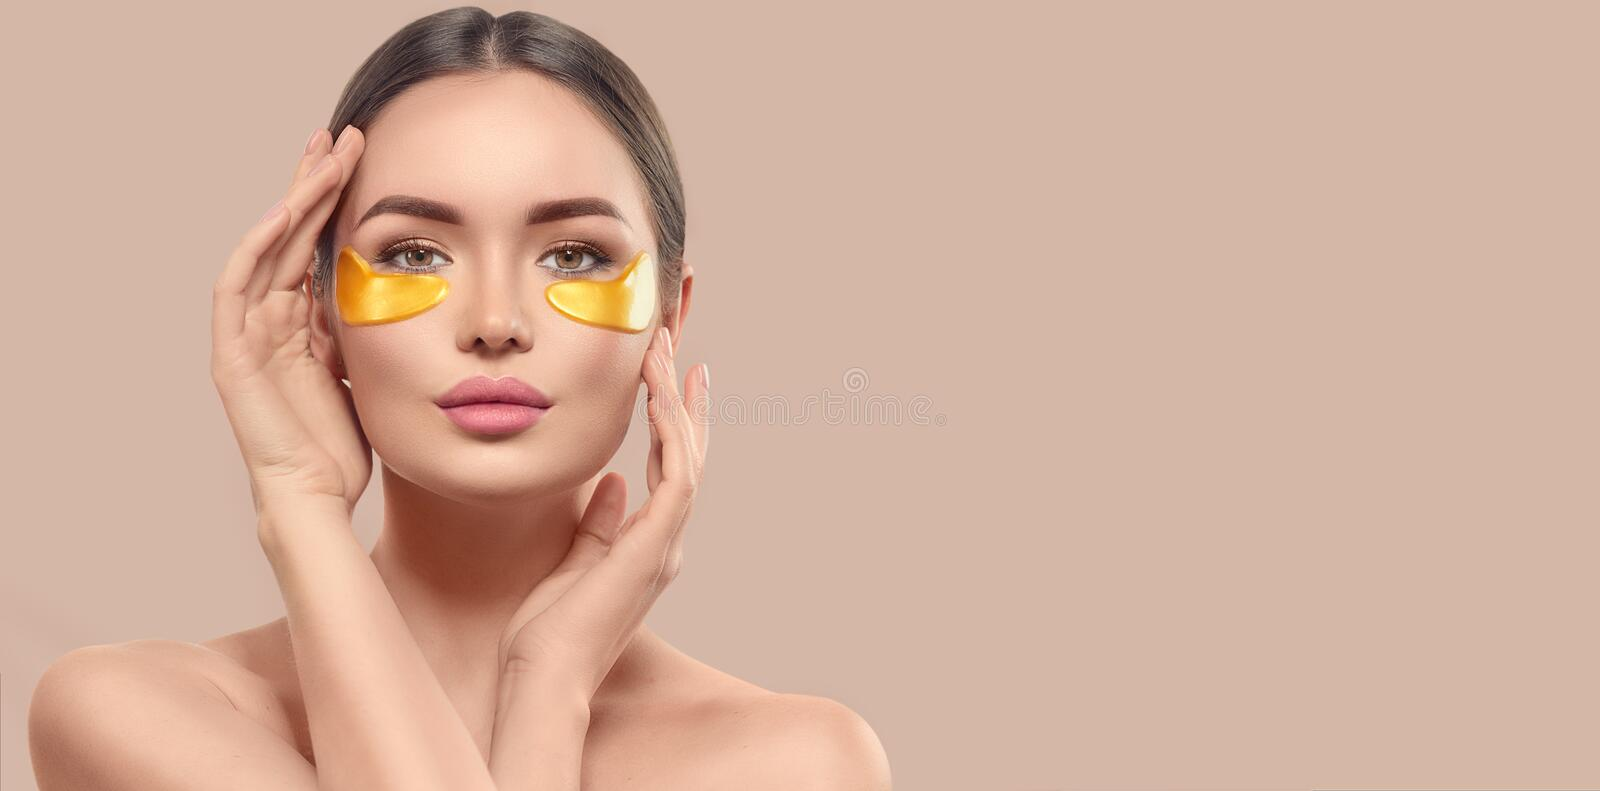 Woman with under eye collagen gold pads, beauty model girl face with healthy fresh skin. Skin care concept, anti-aging mask royalty free stock photo